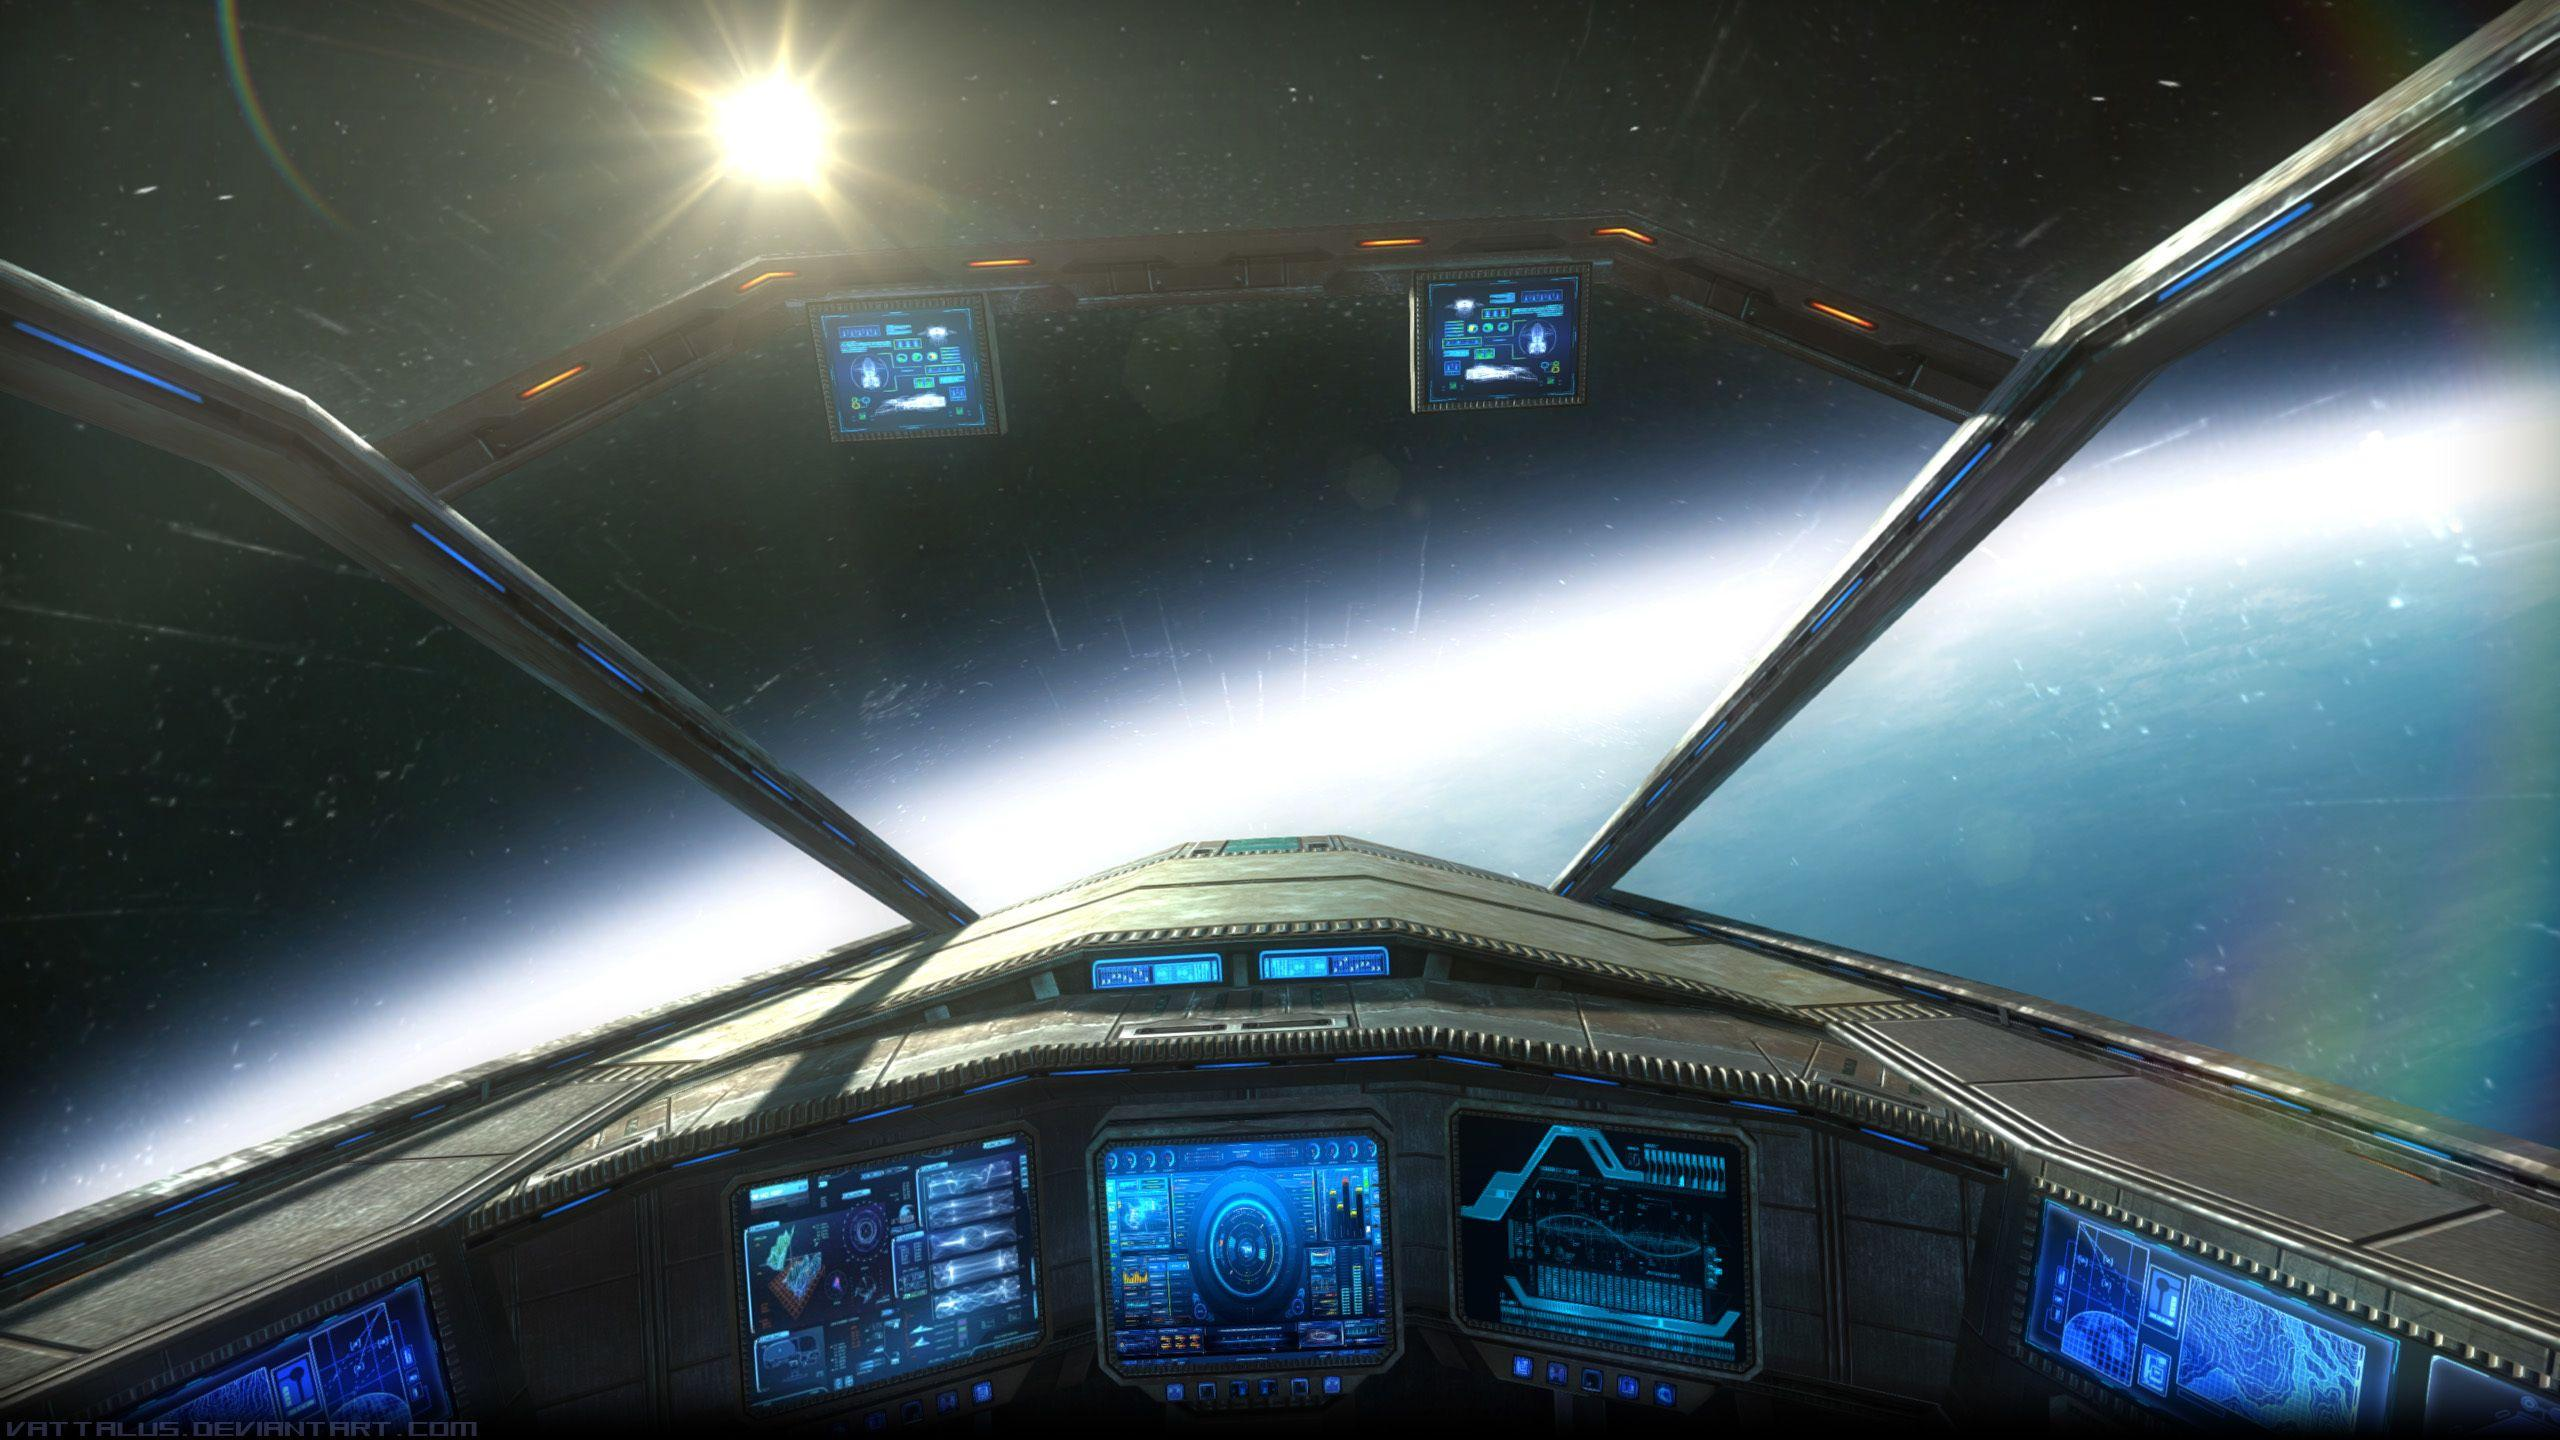 Image of Space Ship Cockpit